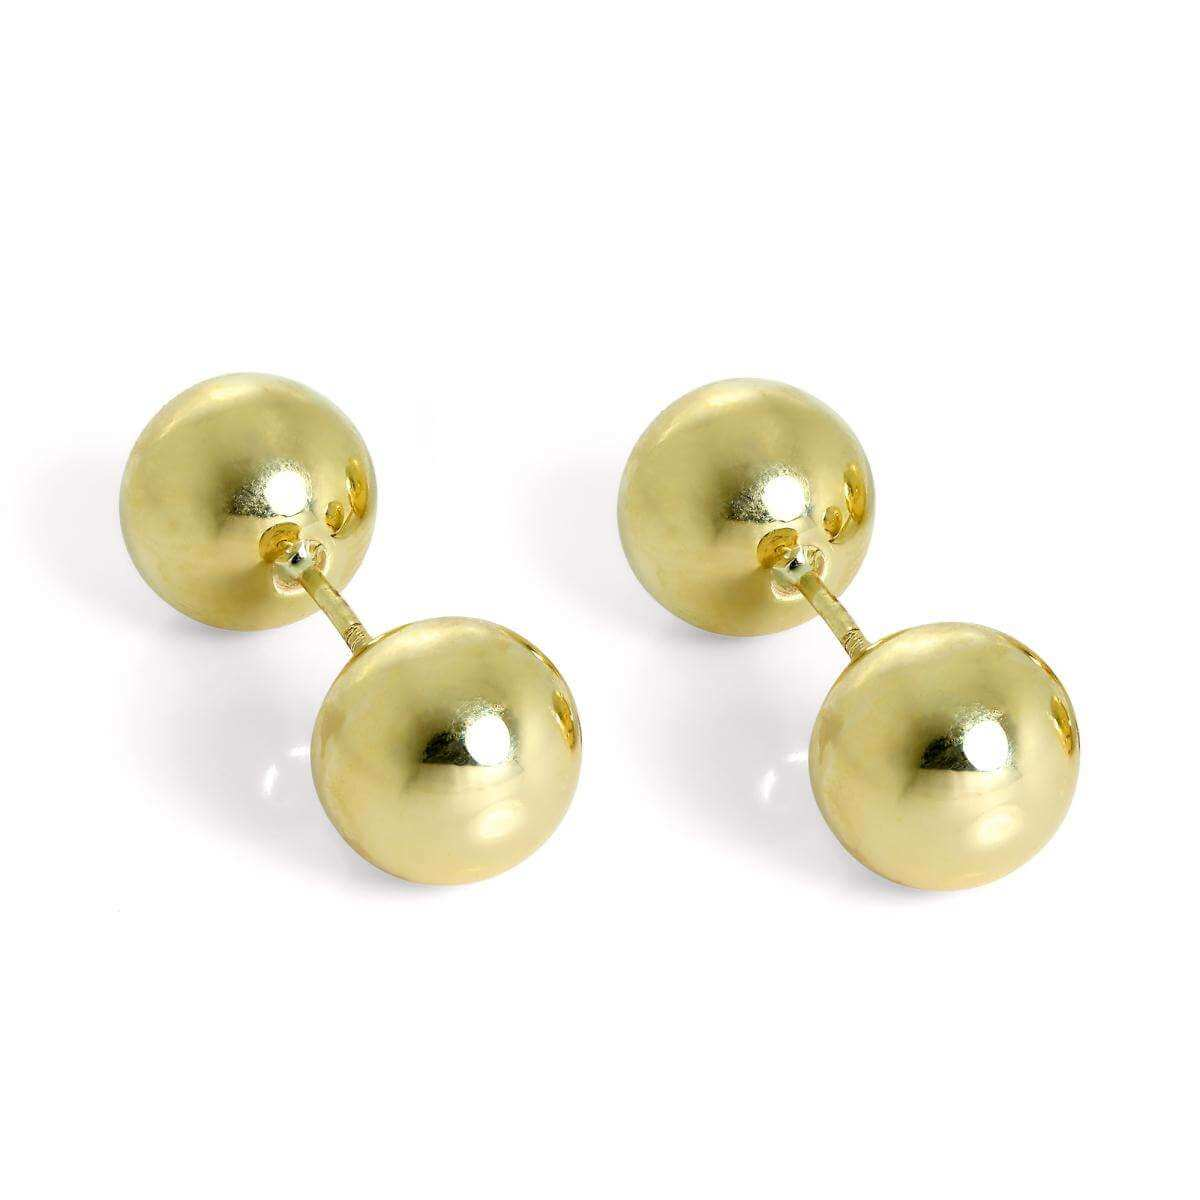 9ct Gold Double Sided 8mm Ball Stud Earrings